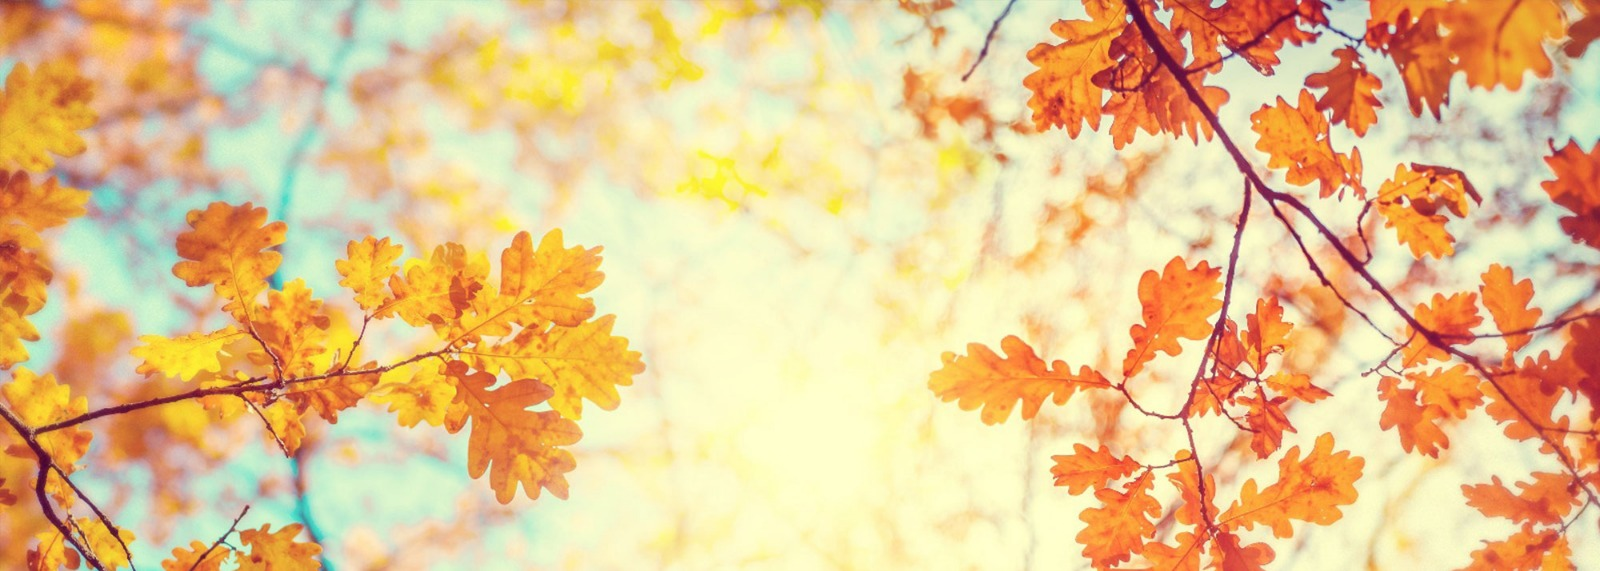 7 Steps To A Brighter Autumn